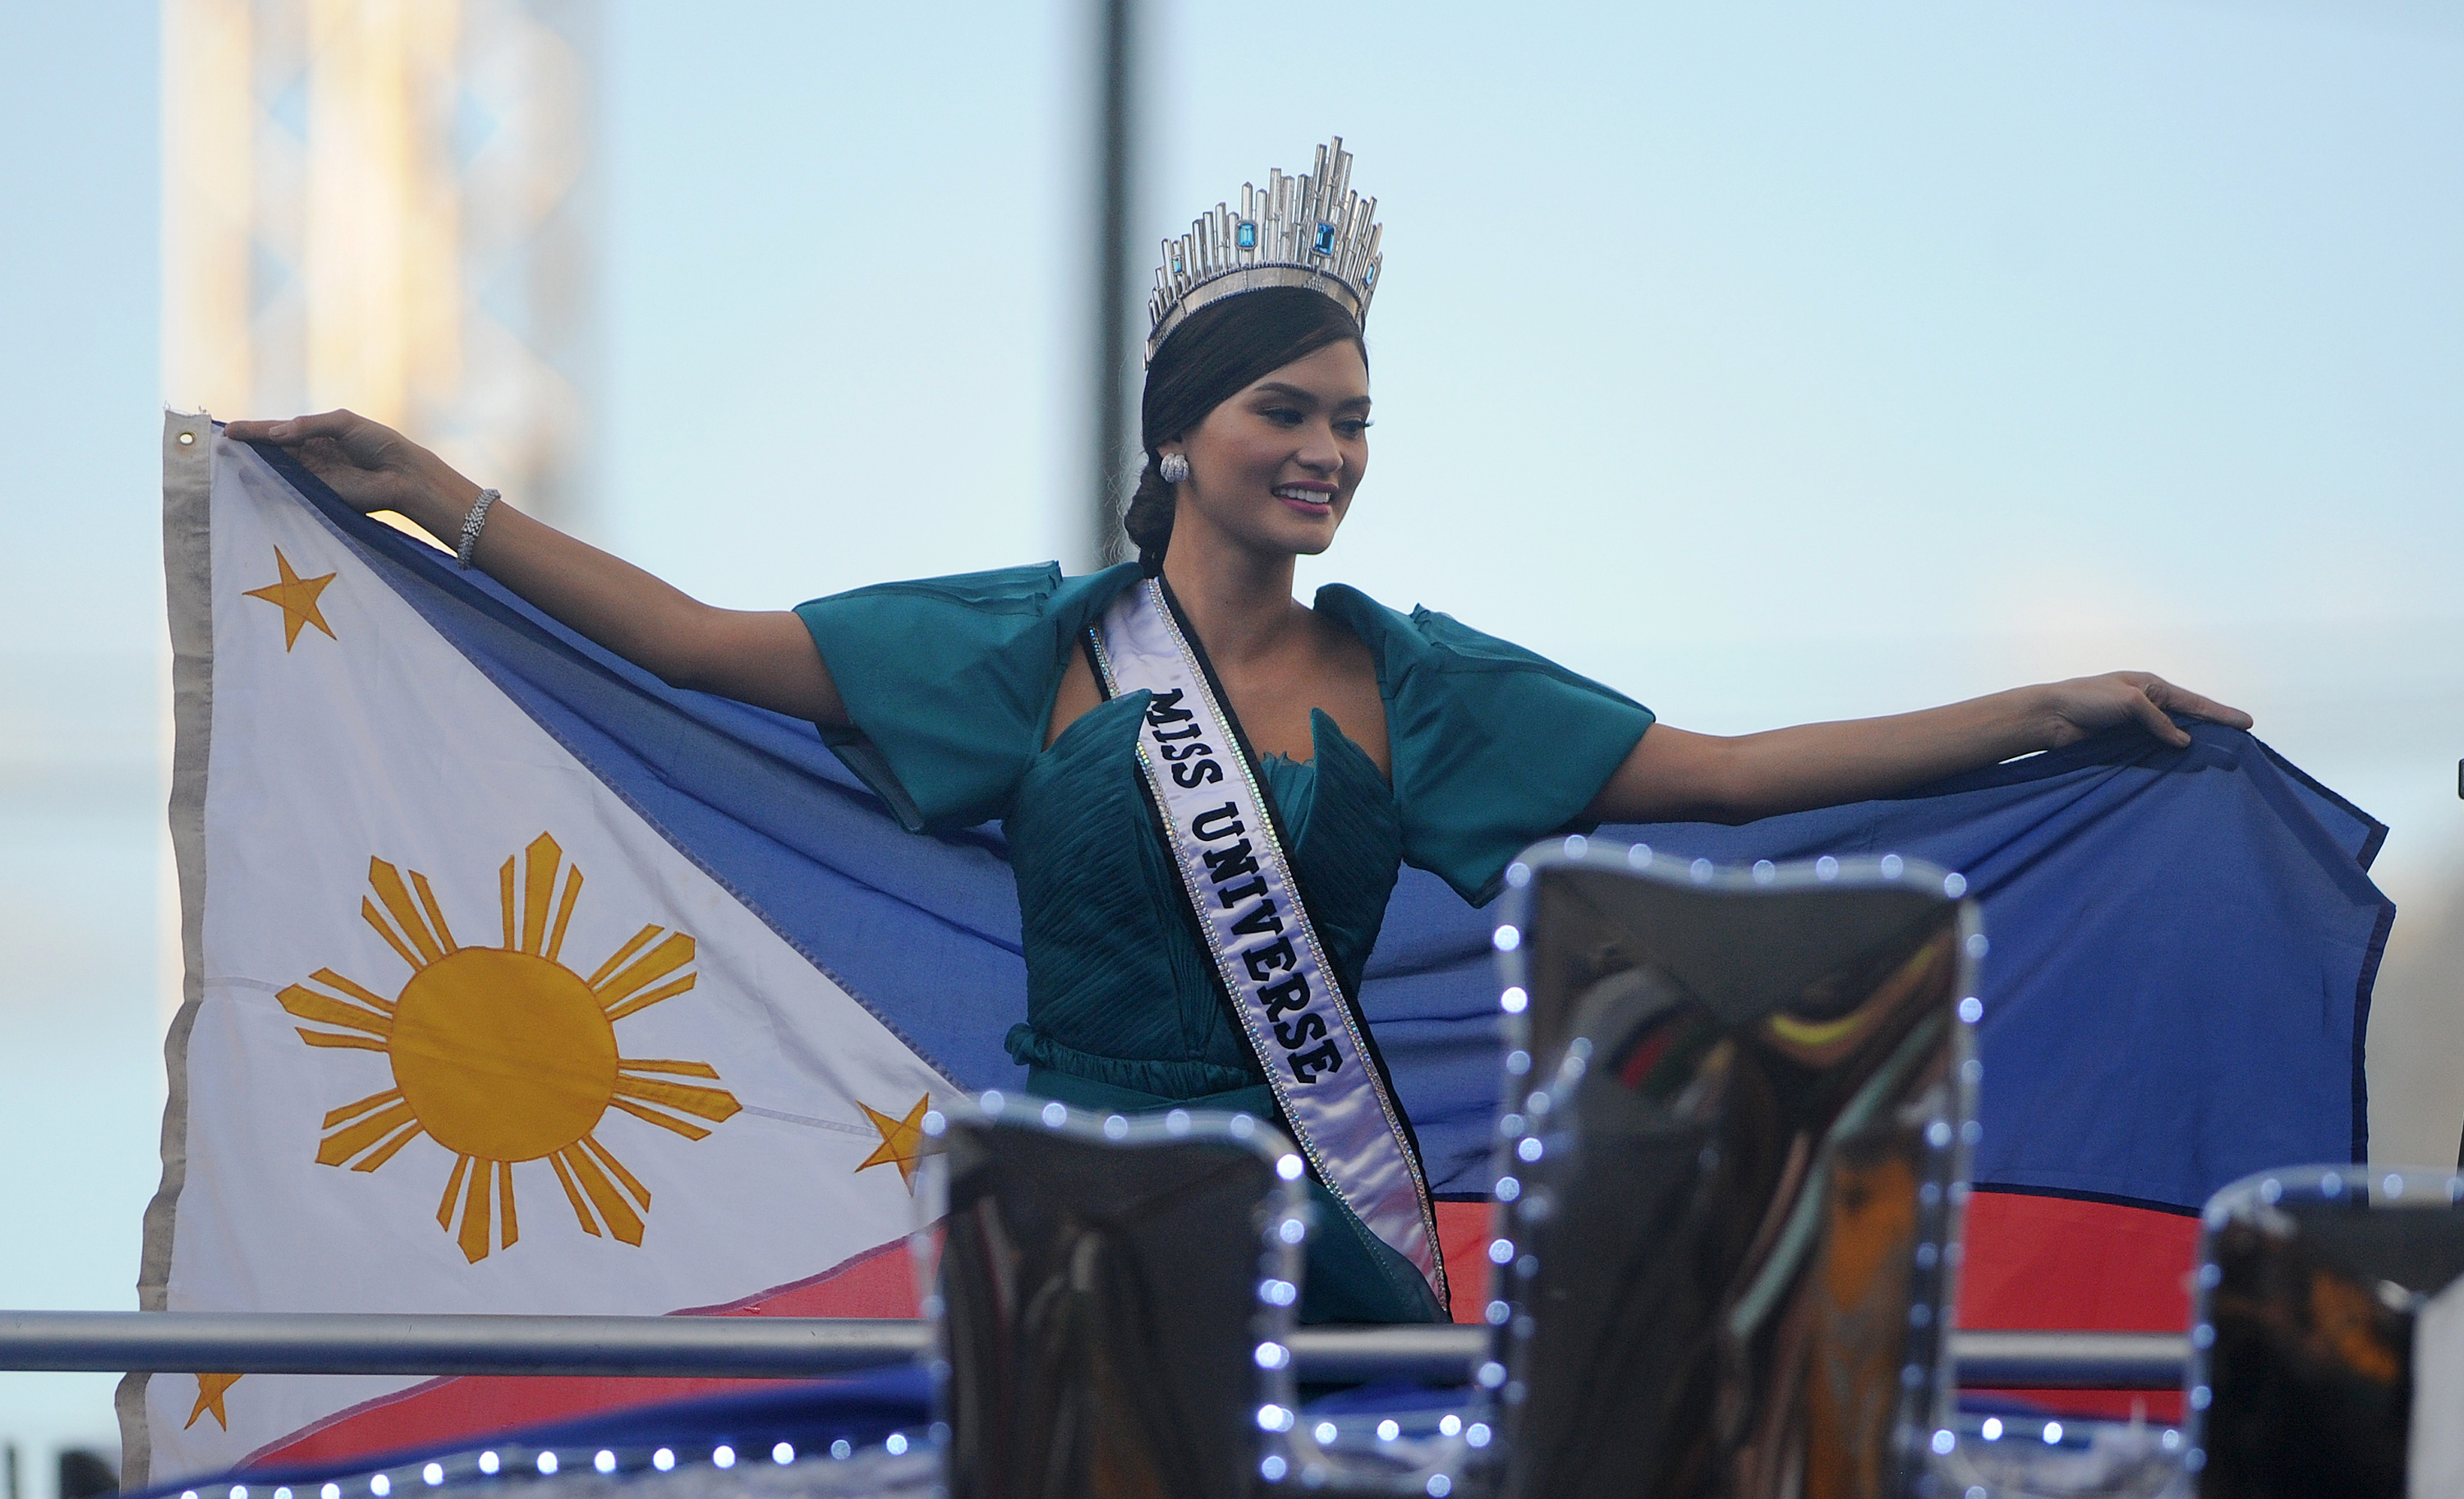 Miss Universe Pia Alonzo Wurtzbach waves a Philippine flag during her victory homecoming parade in Manila on January 25, 2016. Wurtzbach was crowned Miss Universe in December in a drama-filled show after the pageant's host, comedian Steve Harvey, misread his cue card and initially announced Miss Colombia as the winner before apologizing and saying Wurtzbach had won.     AFP PHOTO / NOEL CELIS / AFP / NOEL CELIS